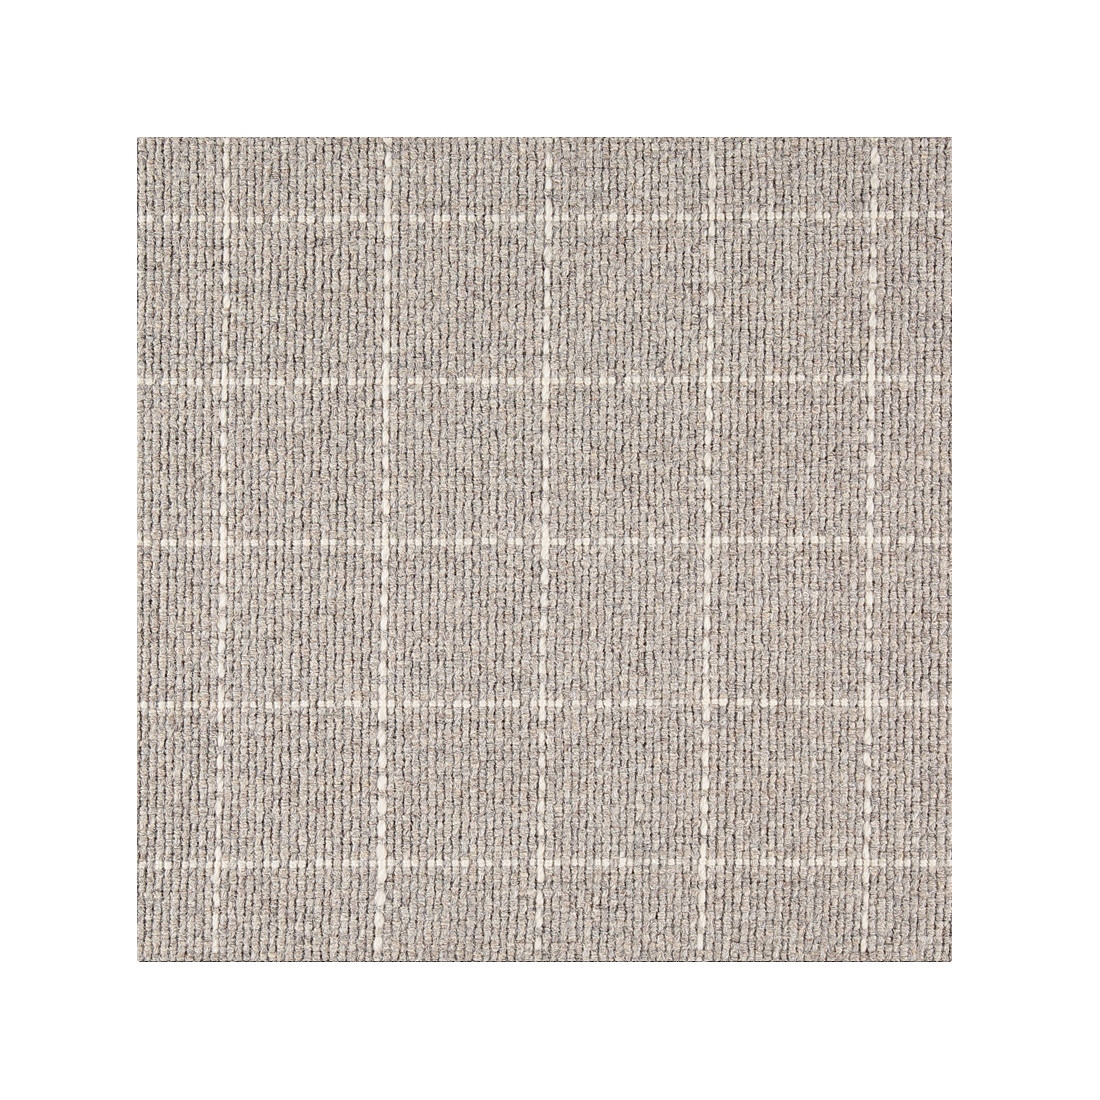 Library - 100% Woven Wool Hand Loomed  - Ivory